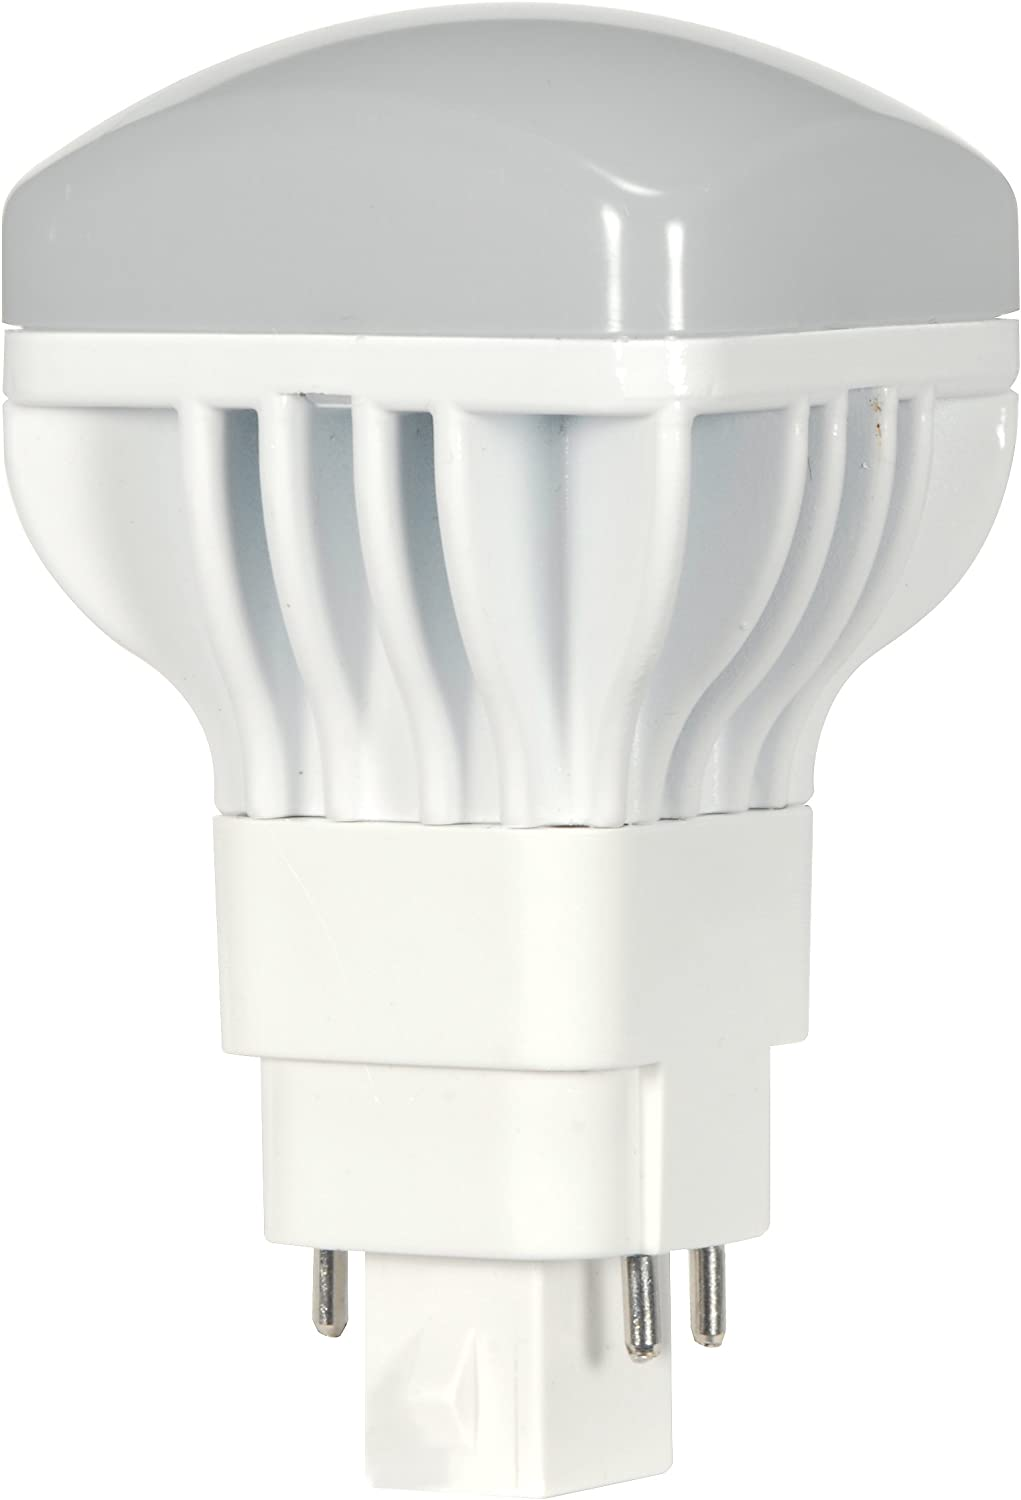 (10-Pack) Satco S9300 13W/V/LED/CFL/827/4P 13-Watt G24q Base LED Direct Replacement for PL 4-PIN CFL's (2700K) 71fppUxe0nLSL1500_